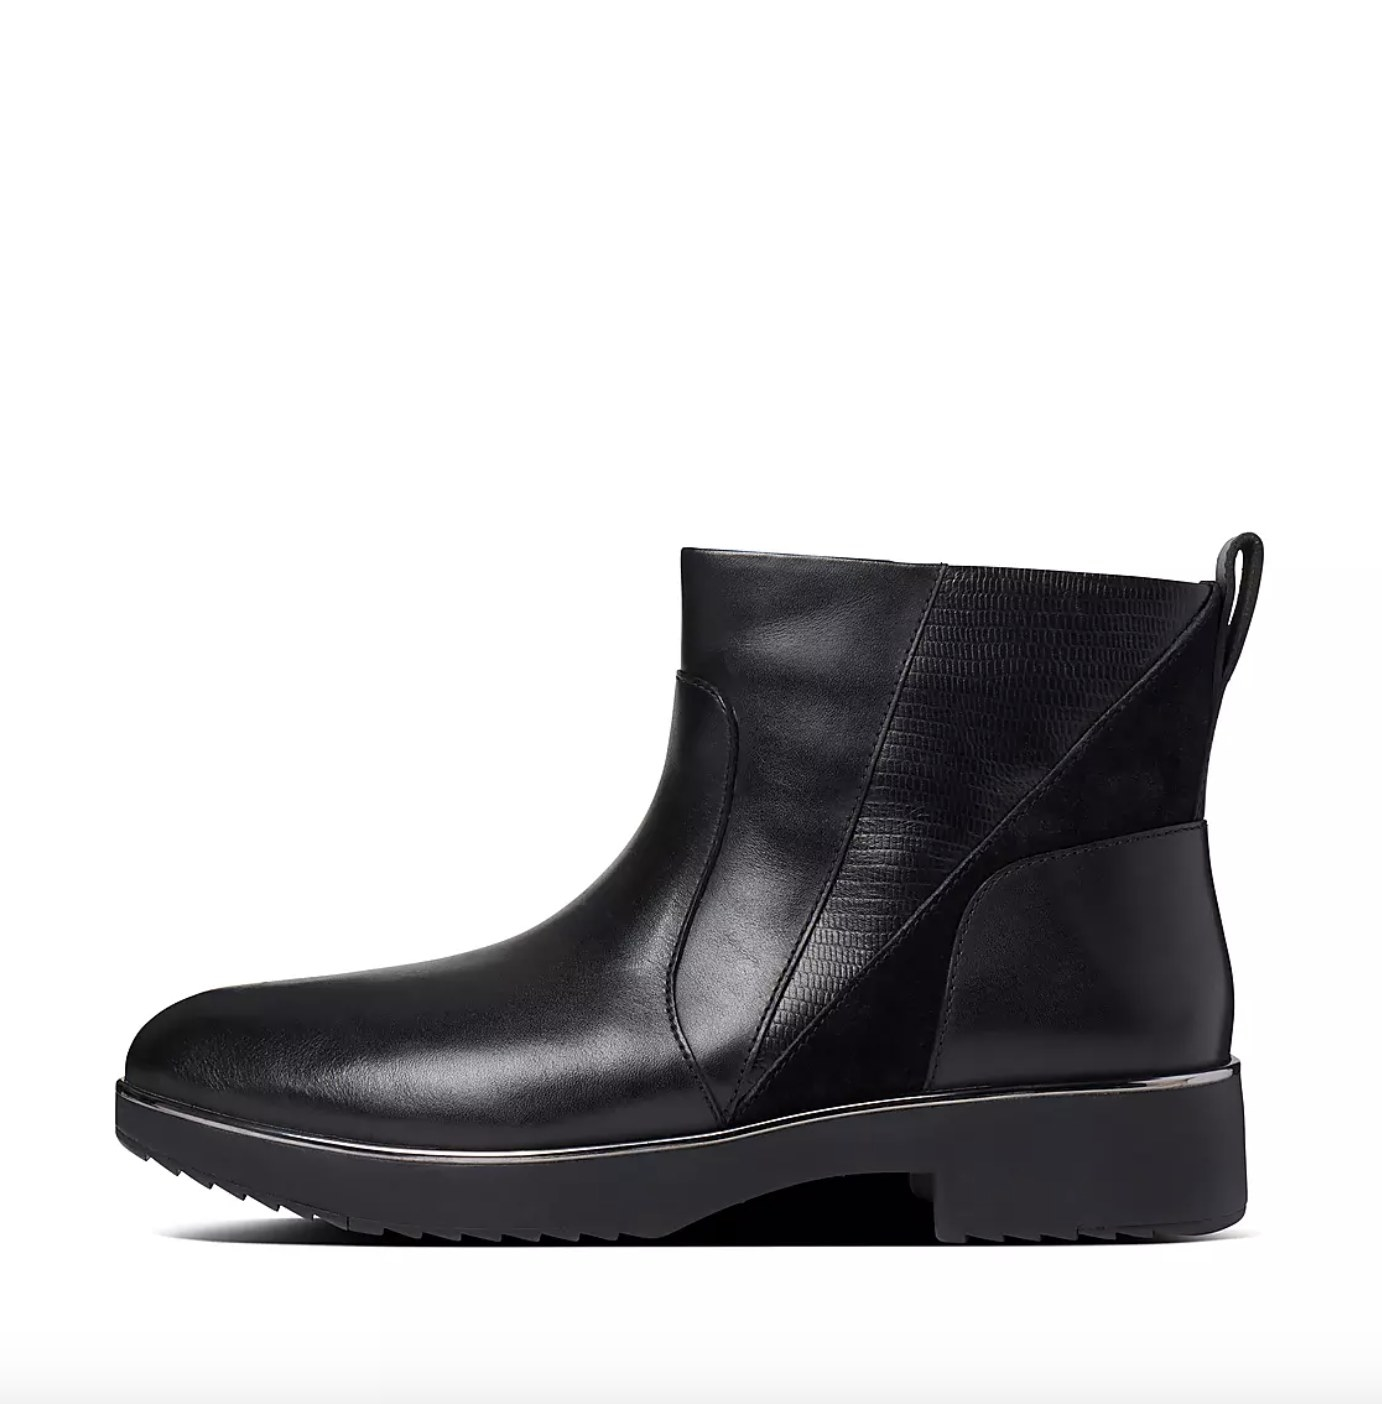 the boot in black